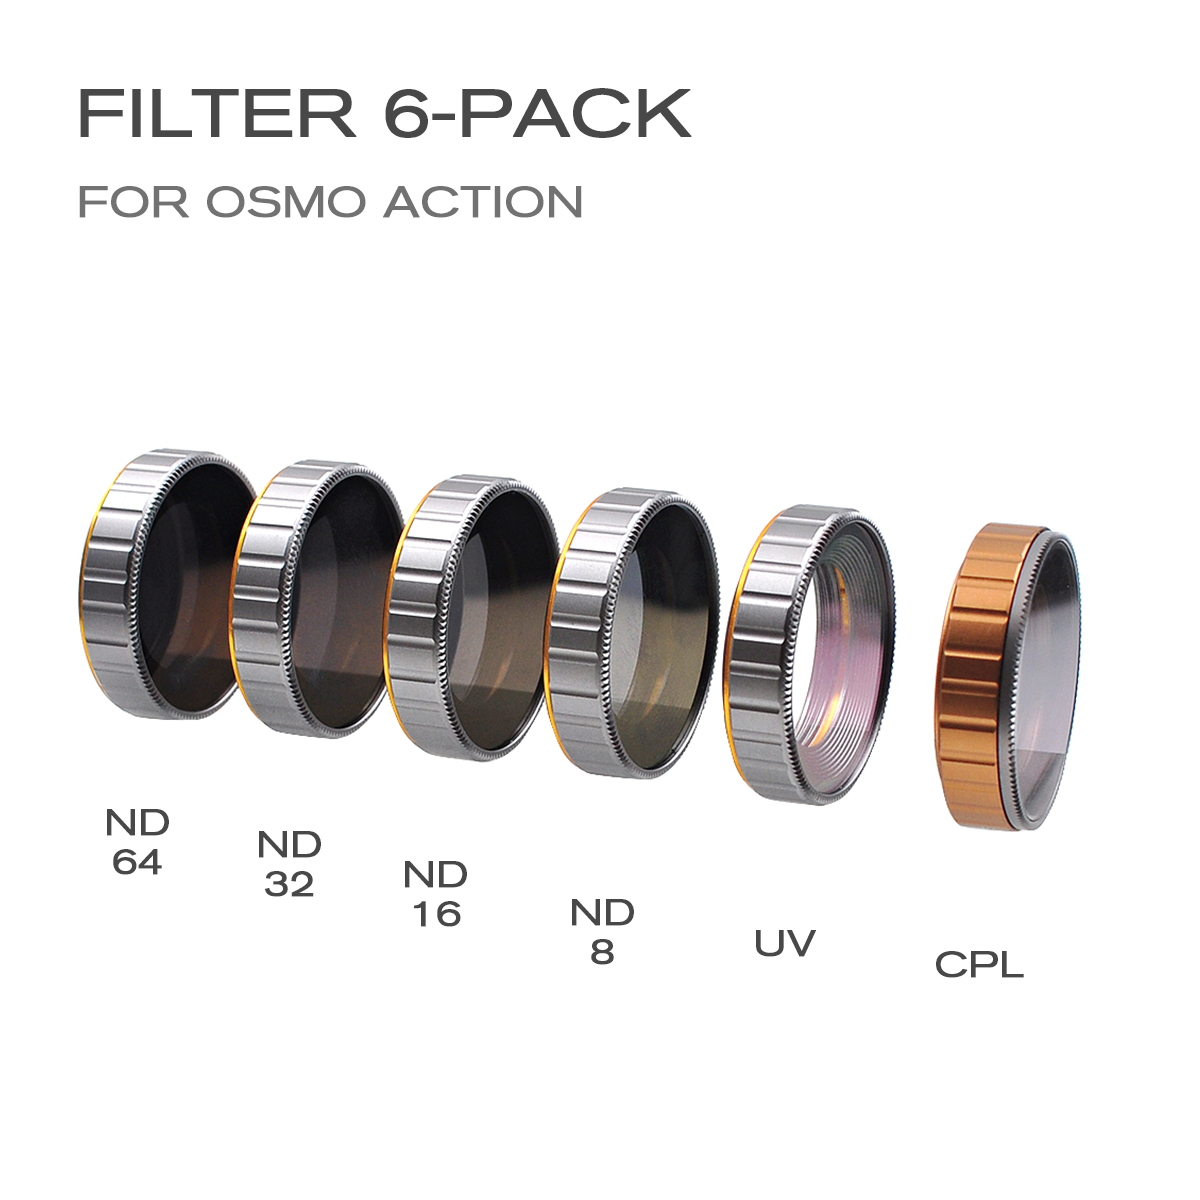 6 IN 1 DJI OSMO ACTION Sport Camera Lens Filter UV CPL ND8 ND16 ND32 ND64